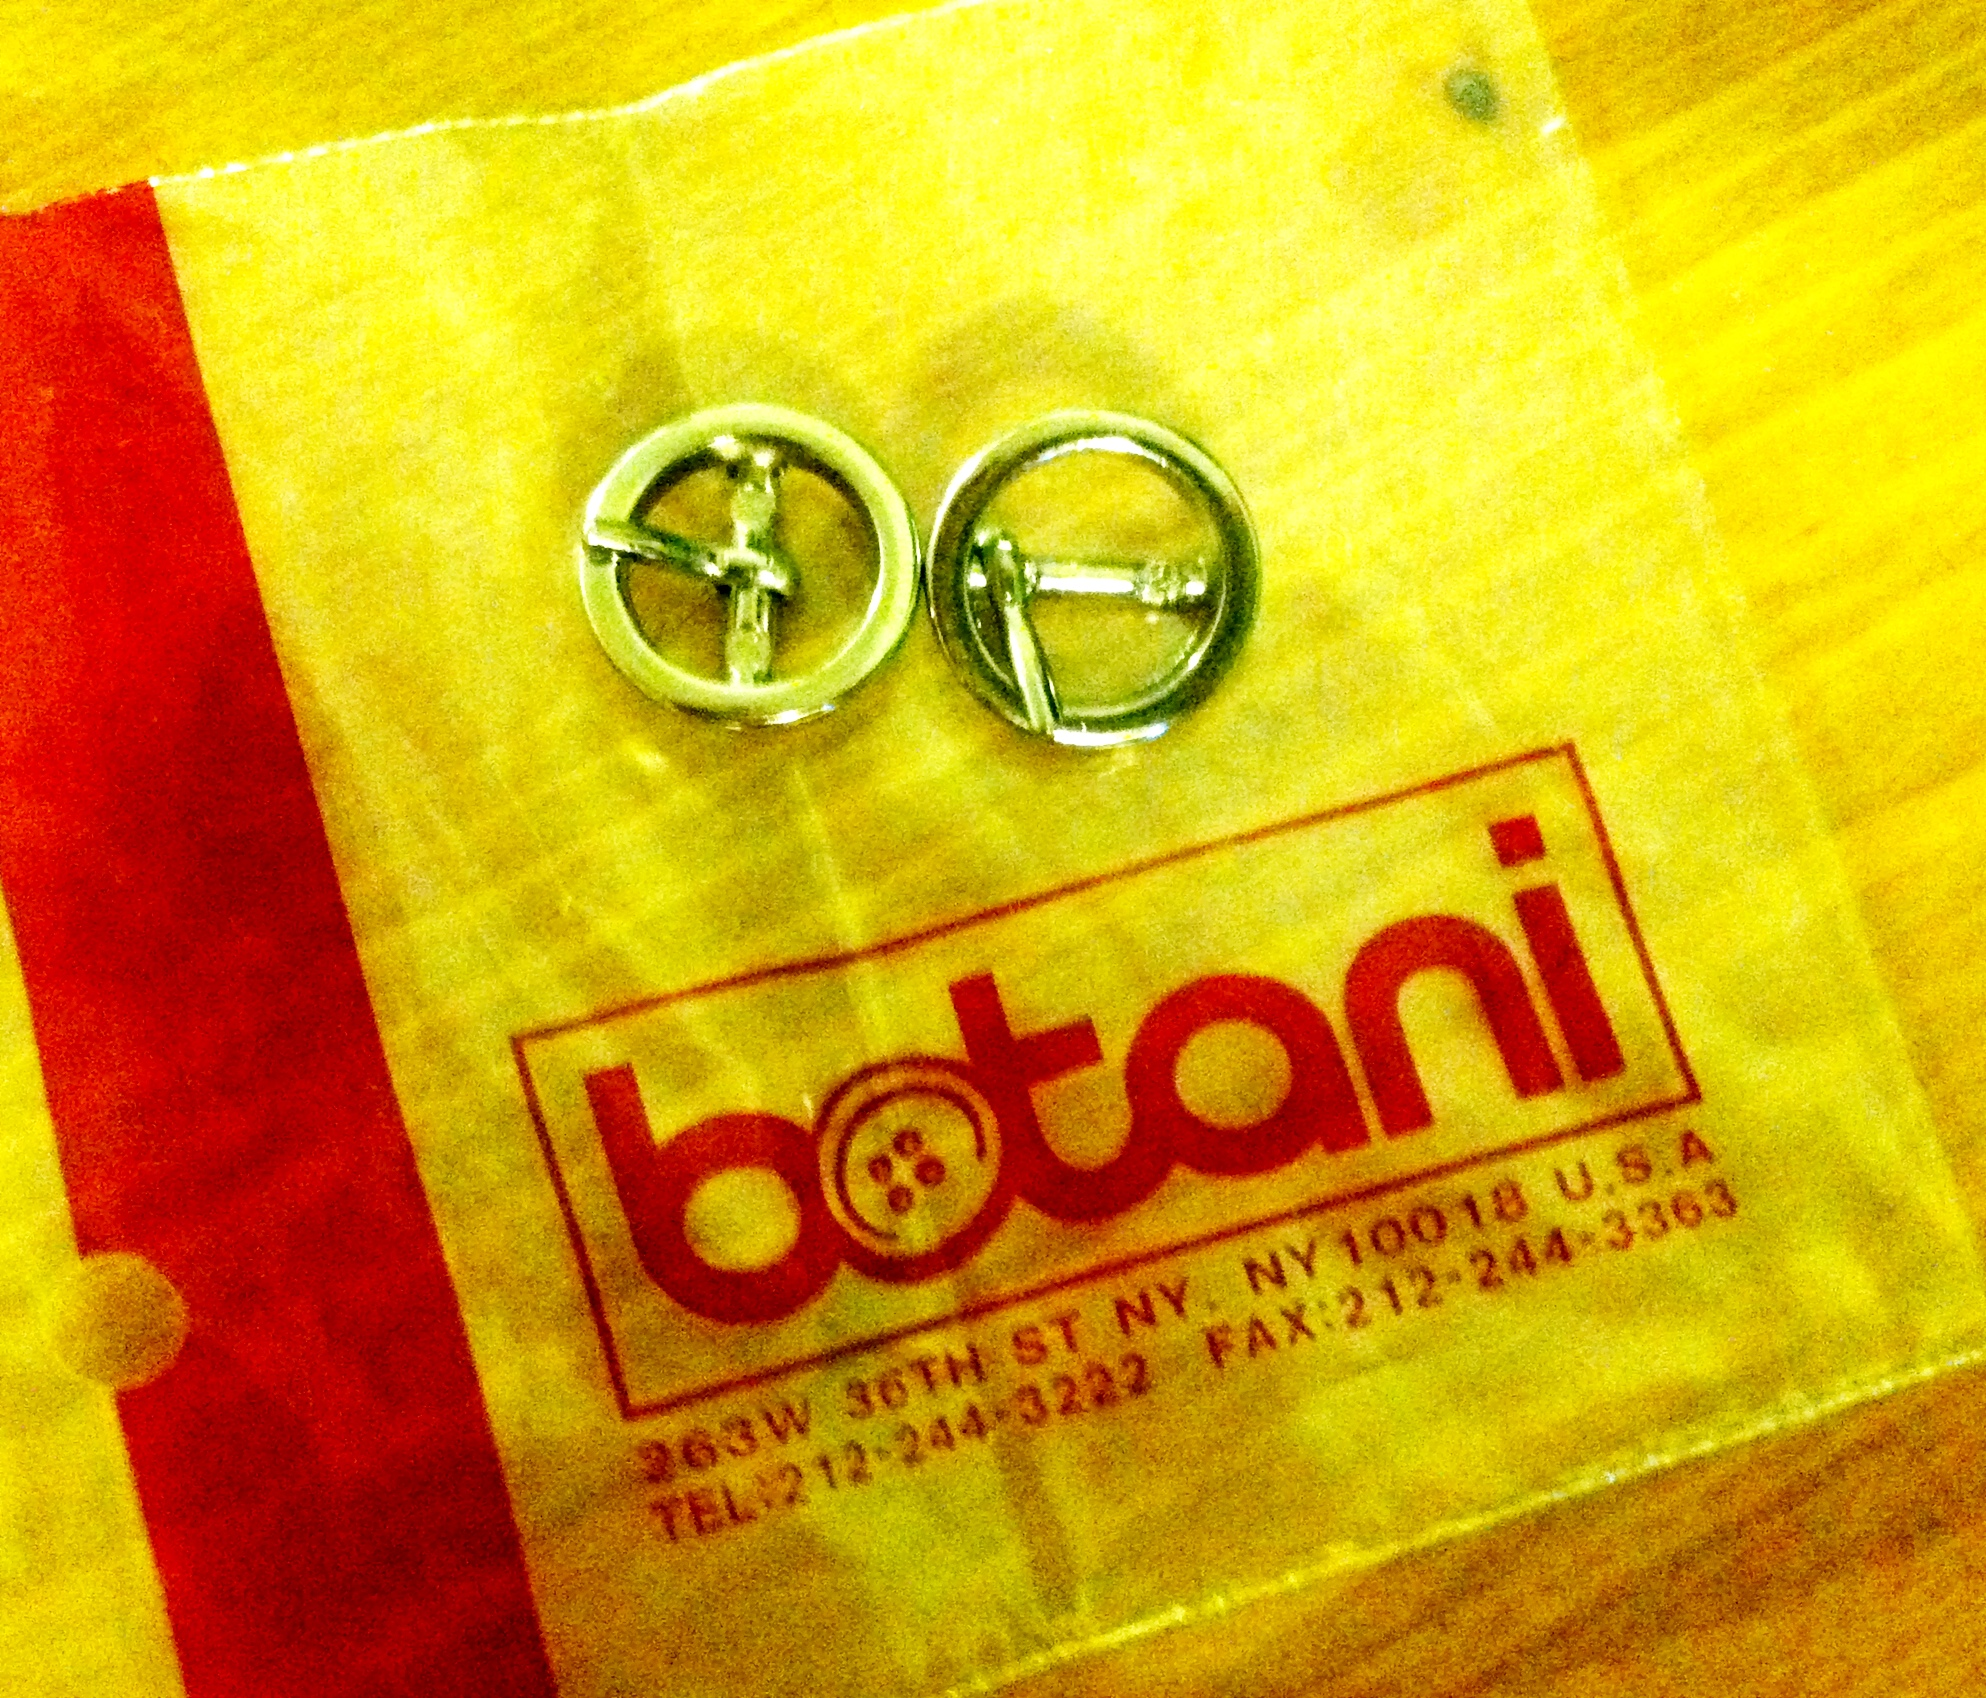 Adorable buckles from Botani